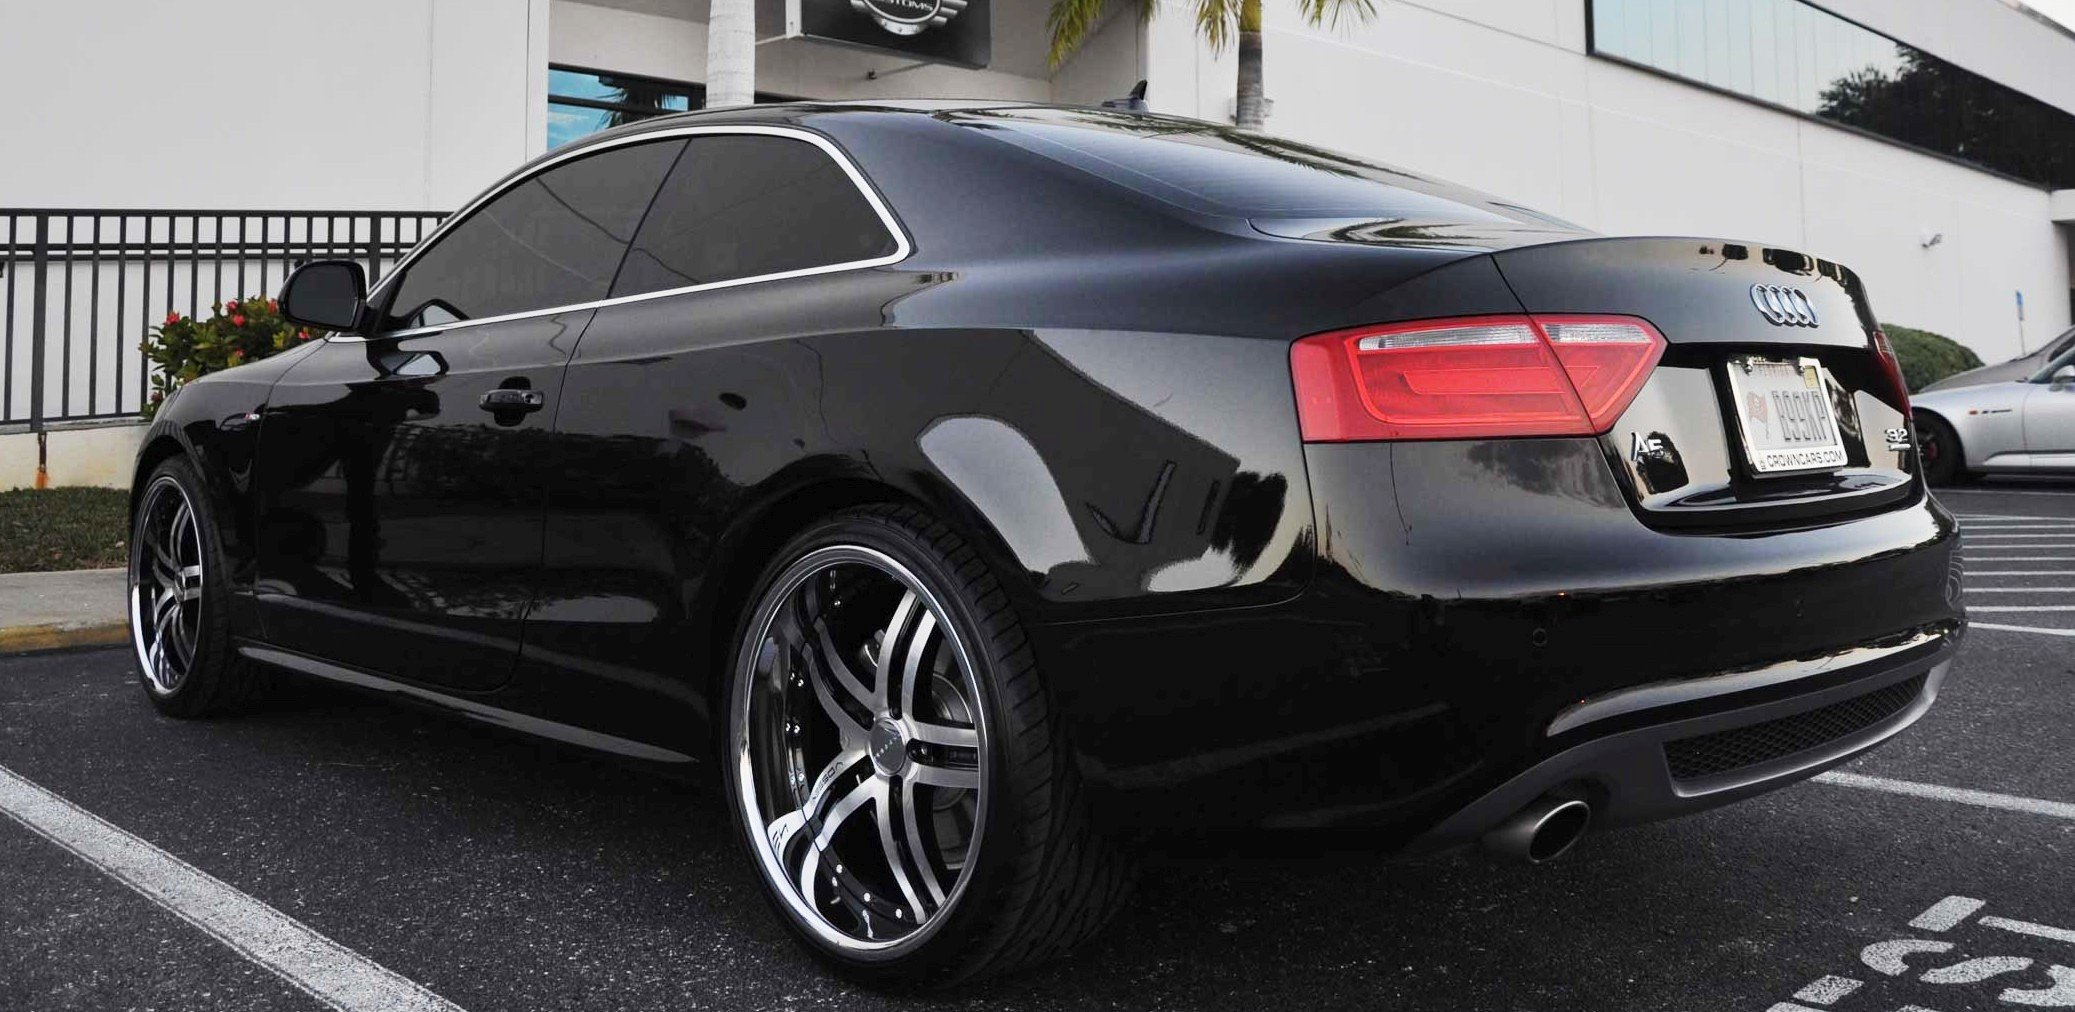 20 Vossen 078 Staggered Wheels And Pirelli Tires Audi A5 Forum Audi S5 Forum